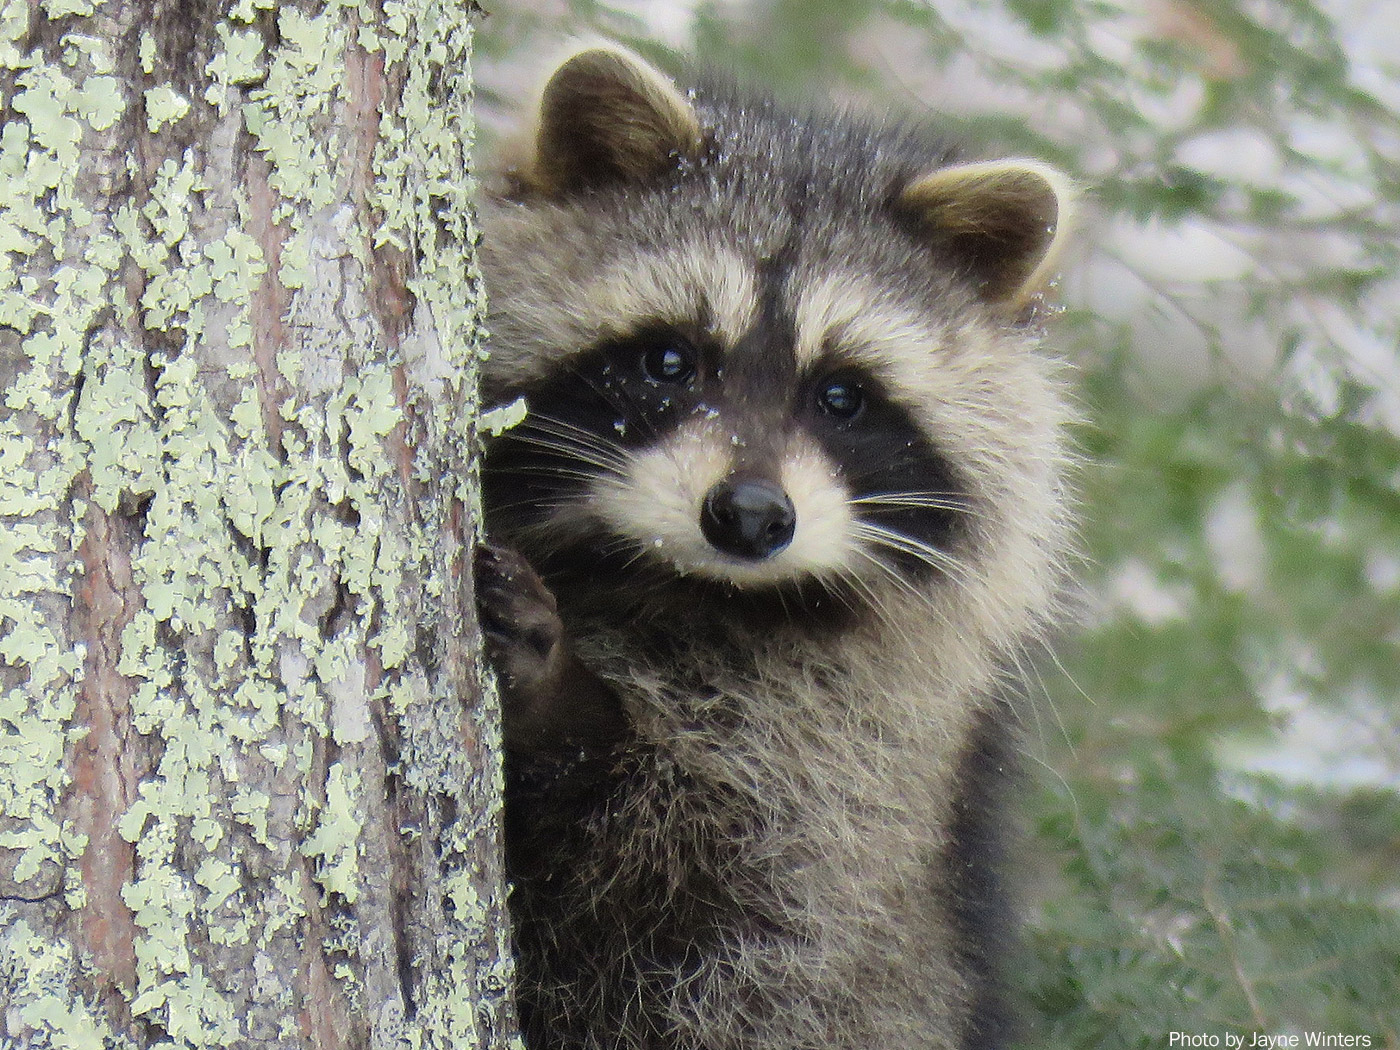 Raccoon, photo by Jayne Winters